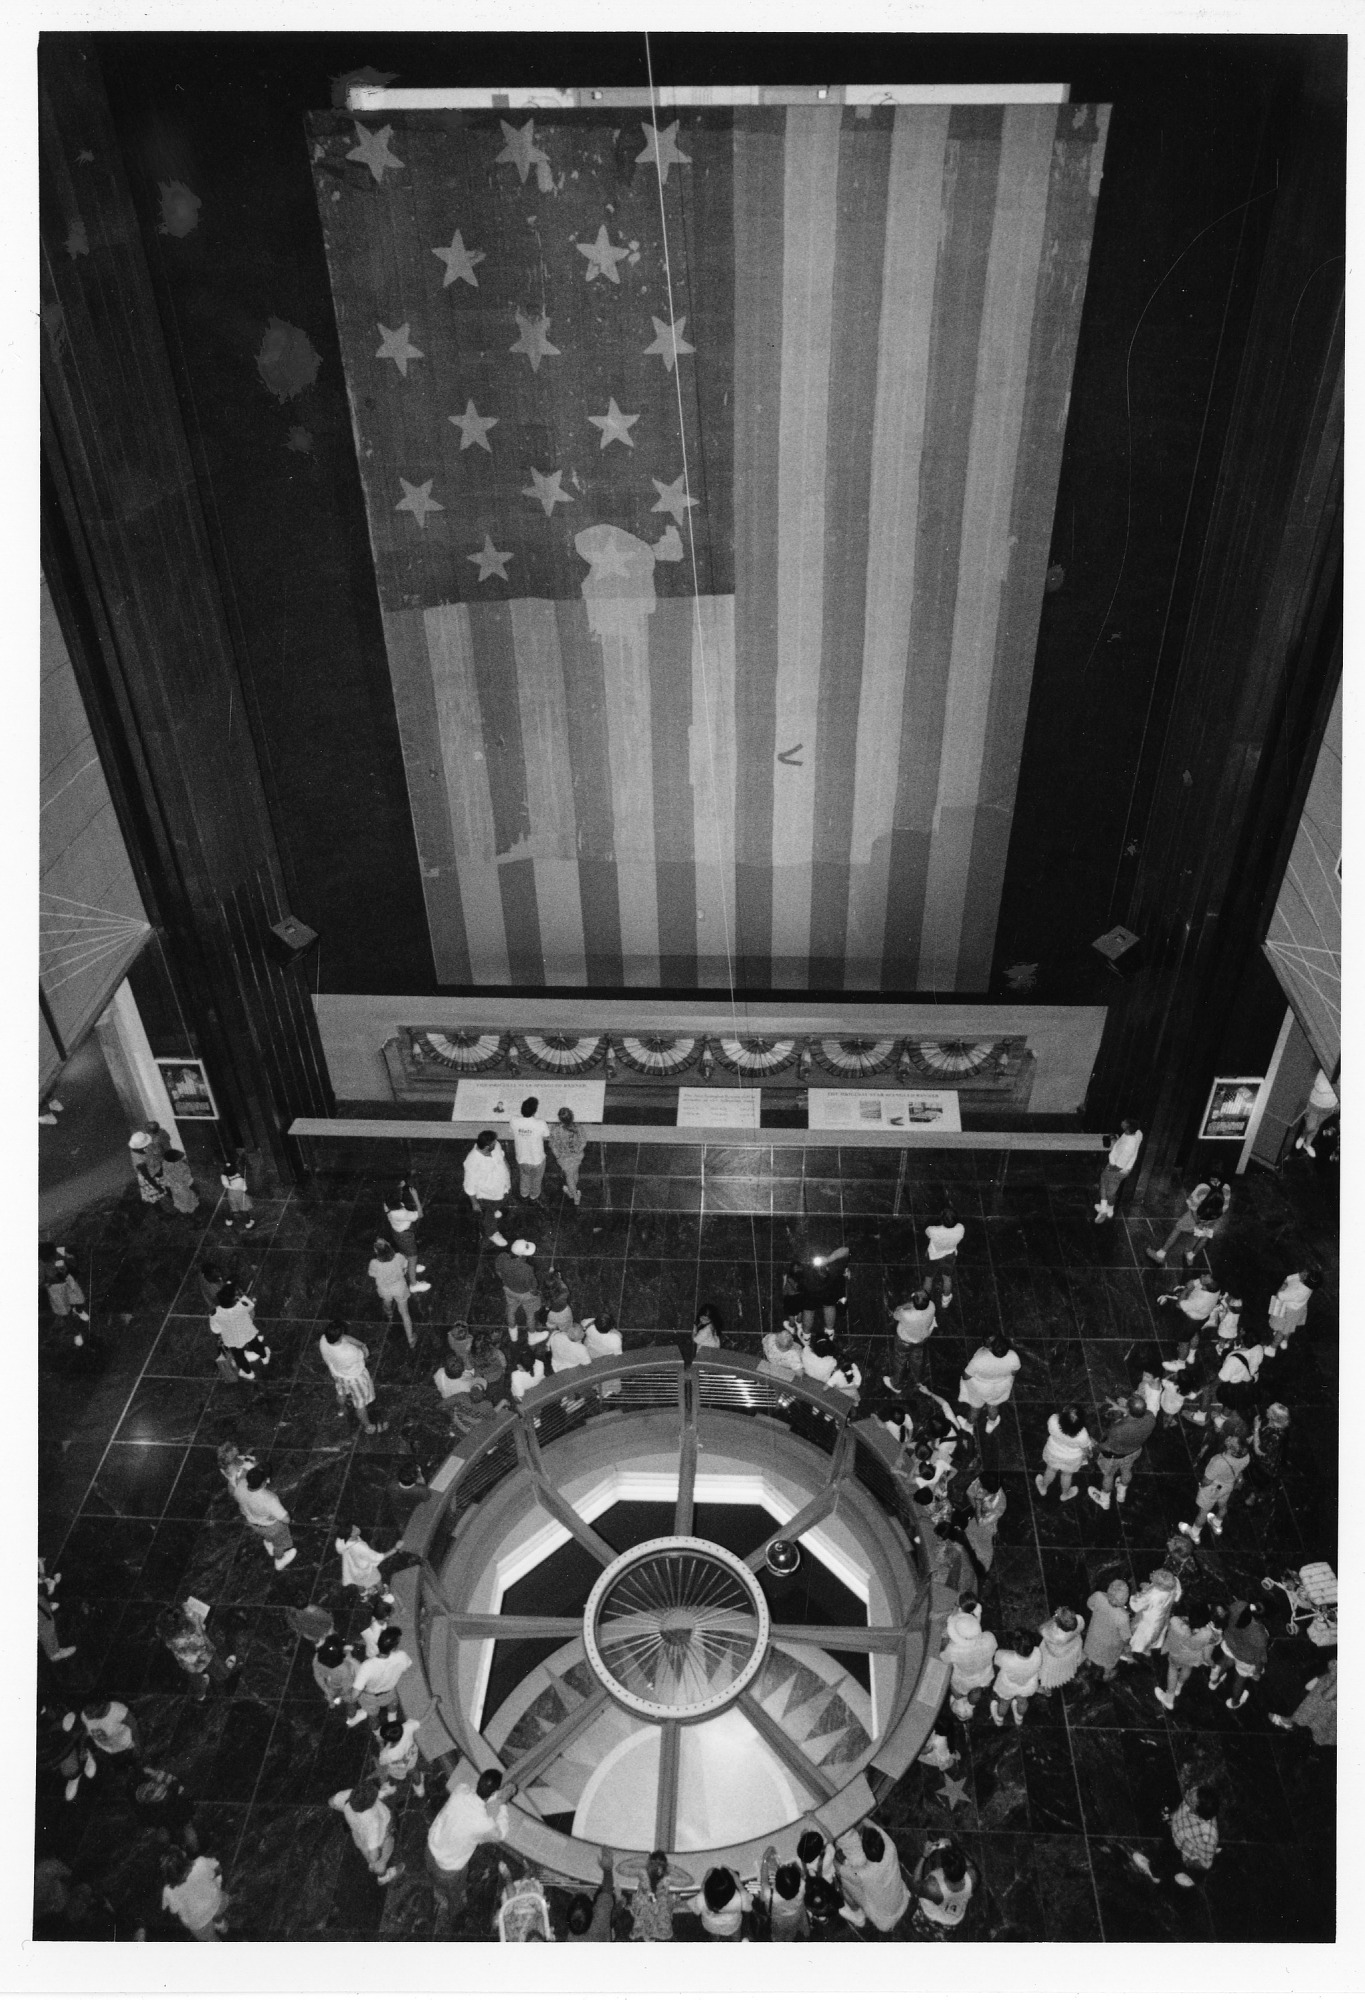 images for Foucault Pendulum and the Star-Spangled Banner